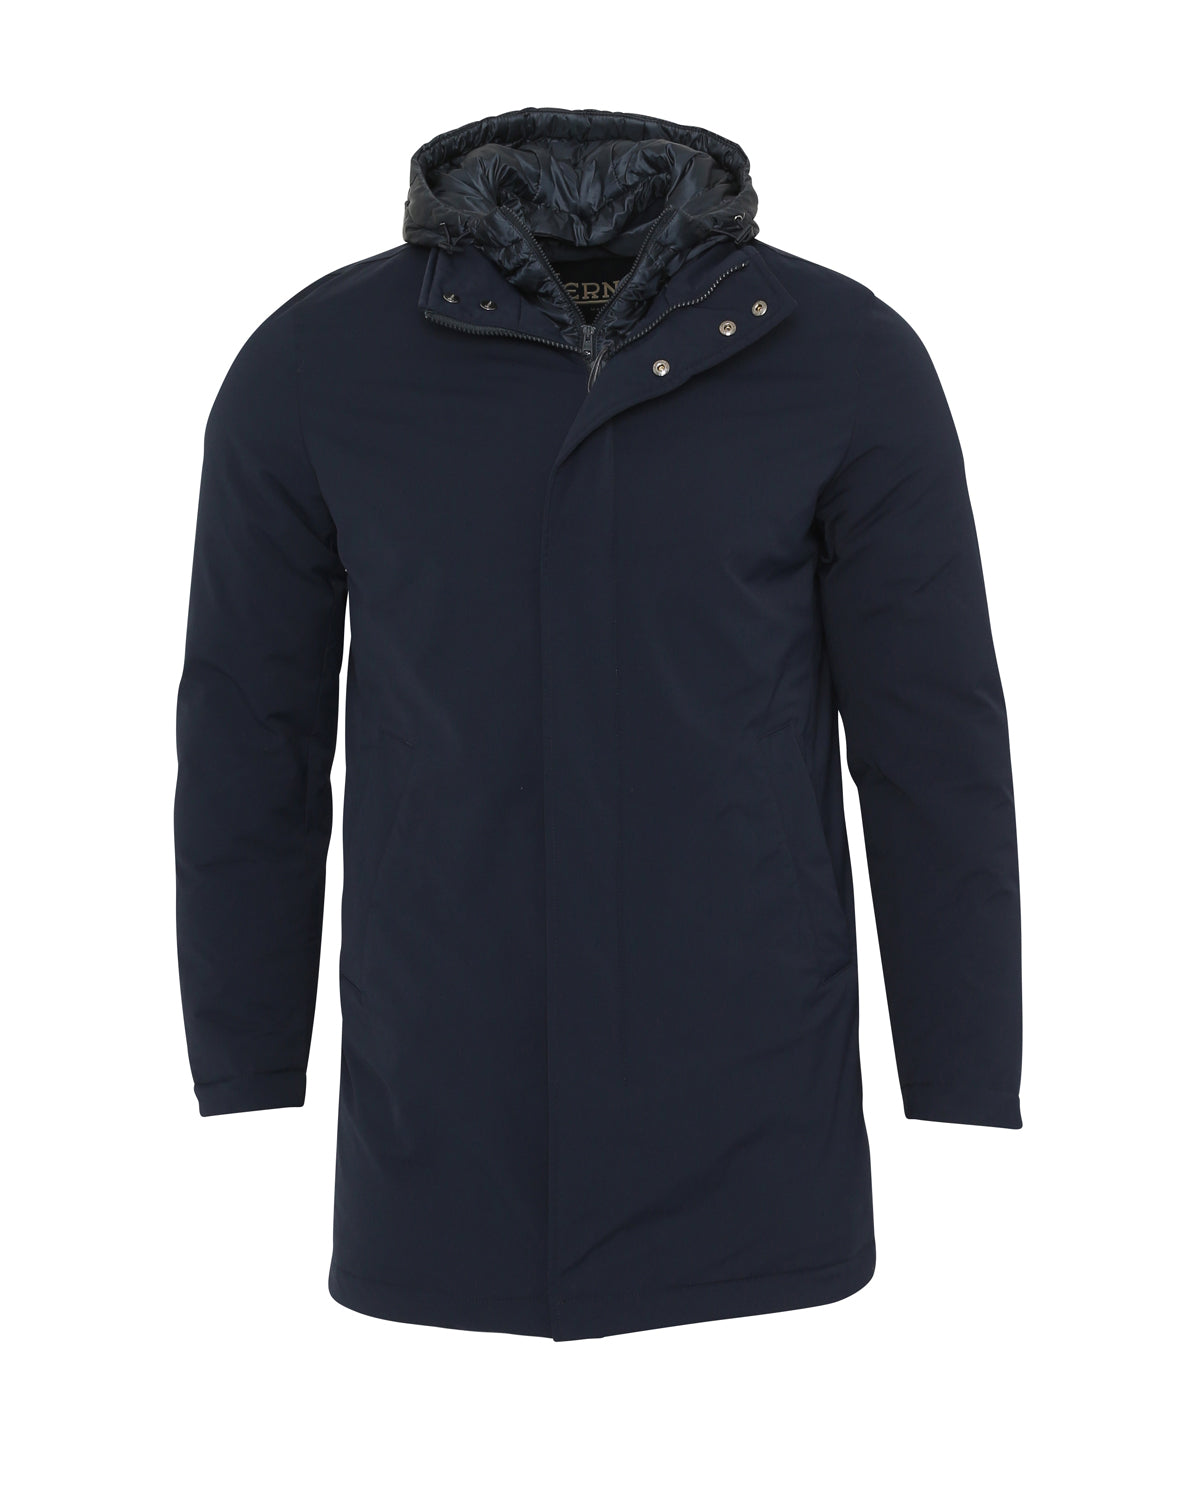 Herno Hooded Jacket With Removable Chest Piece (Navy) - Union 22